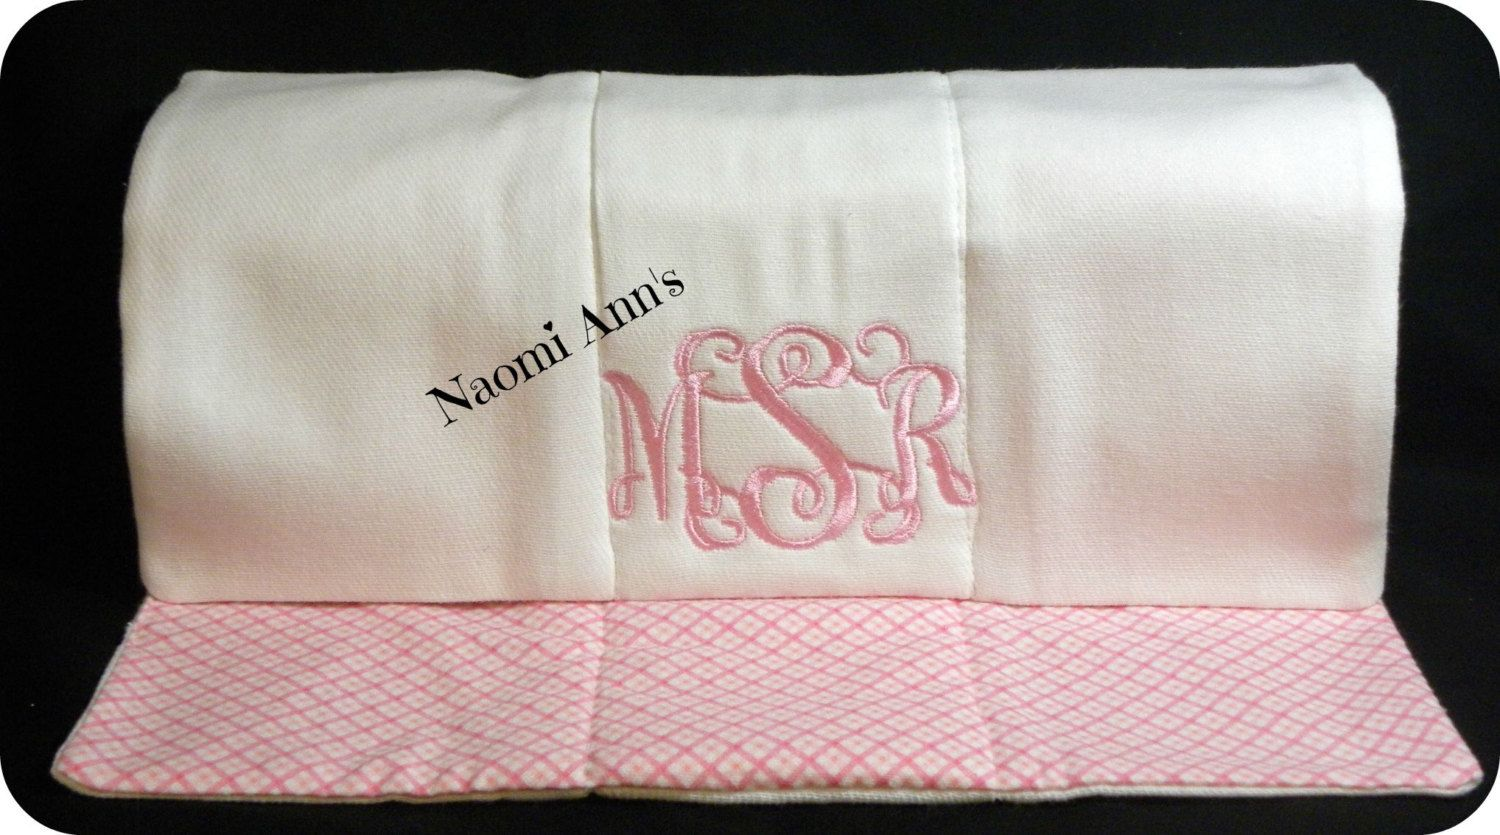 Vine monogram personalized baby girl burp cloth great shower gift personalized baby girl shower gift cotton diaper burp cloth by naomianns on etsy negle Images